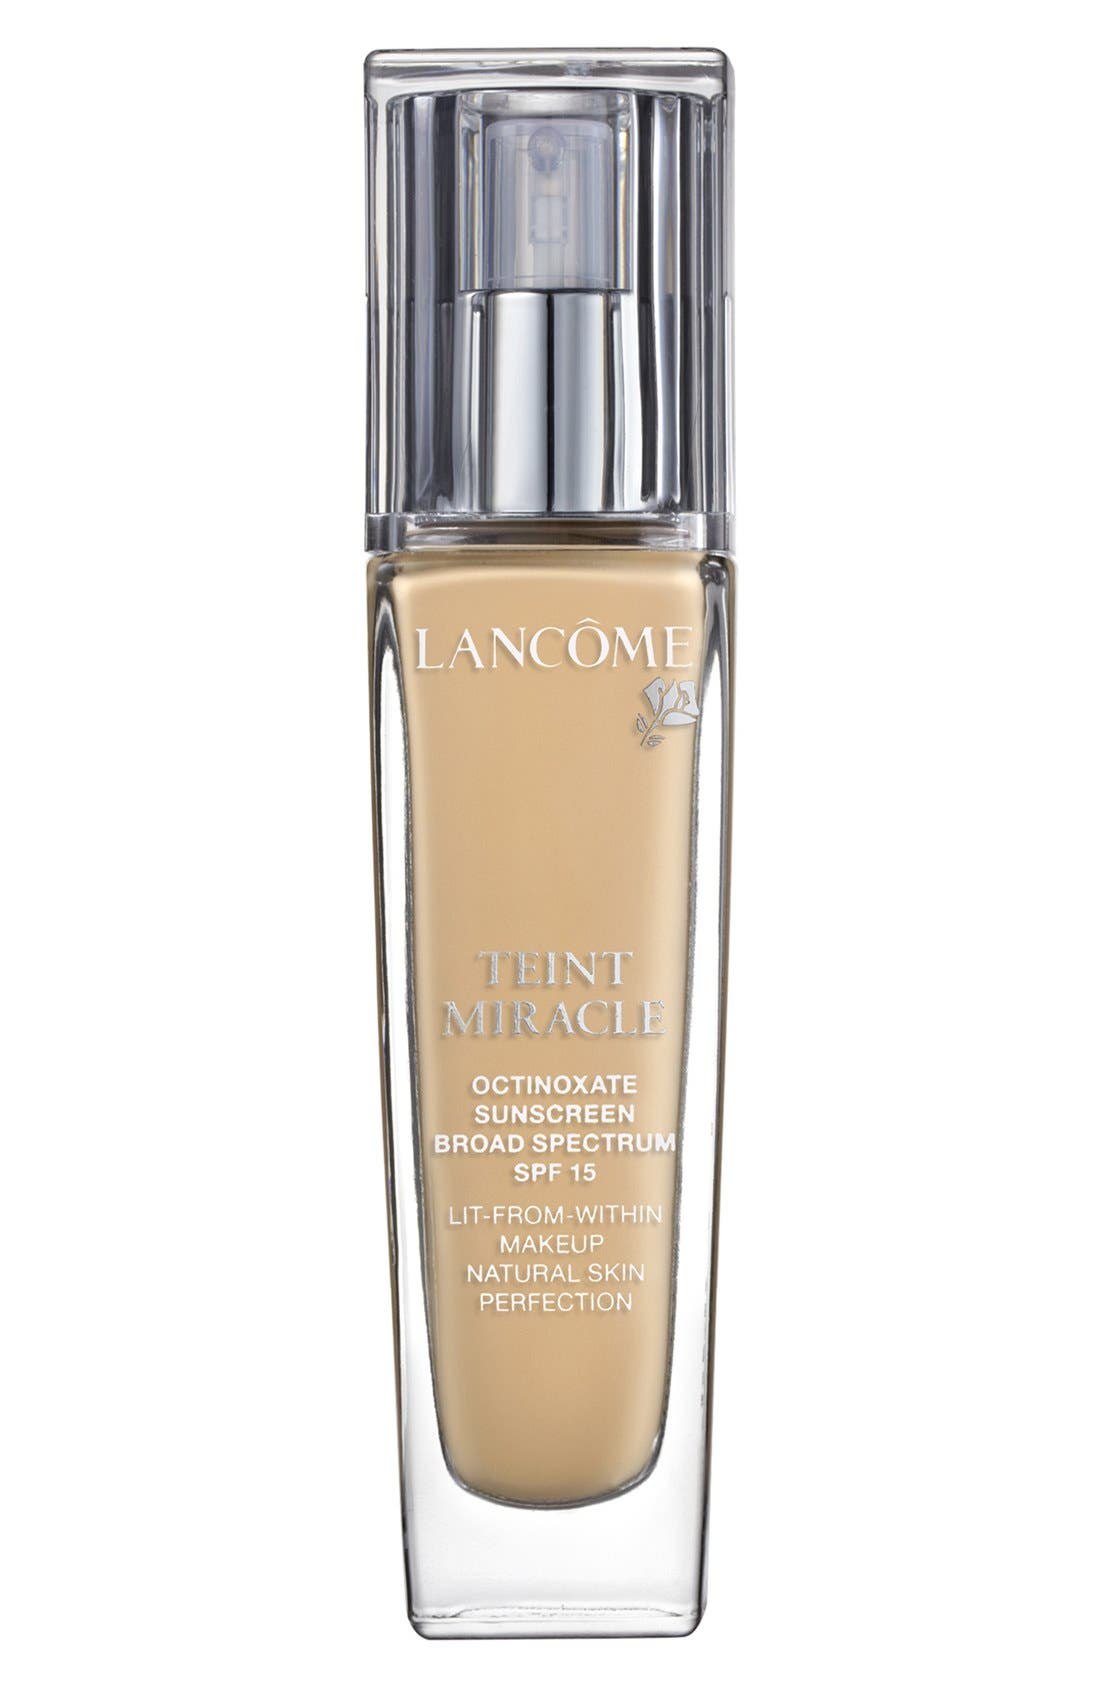 Teint Miracle Lit-from-Within Makeup Natural Skin Perfection SPF 15,                         Main,                         color, BISQUE 340 (N)